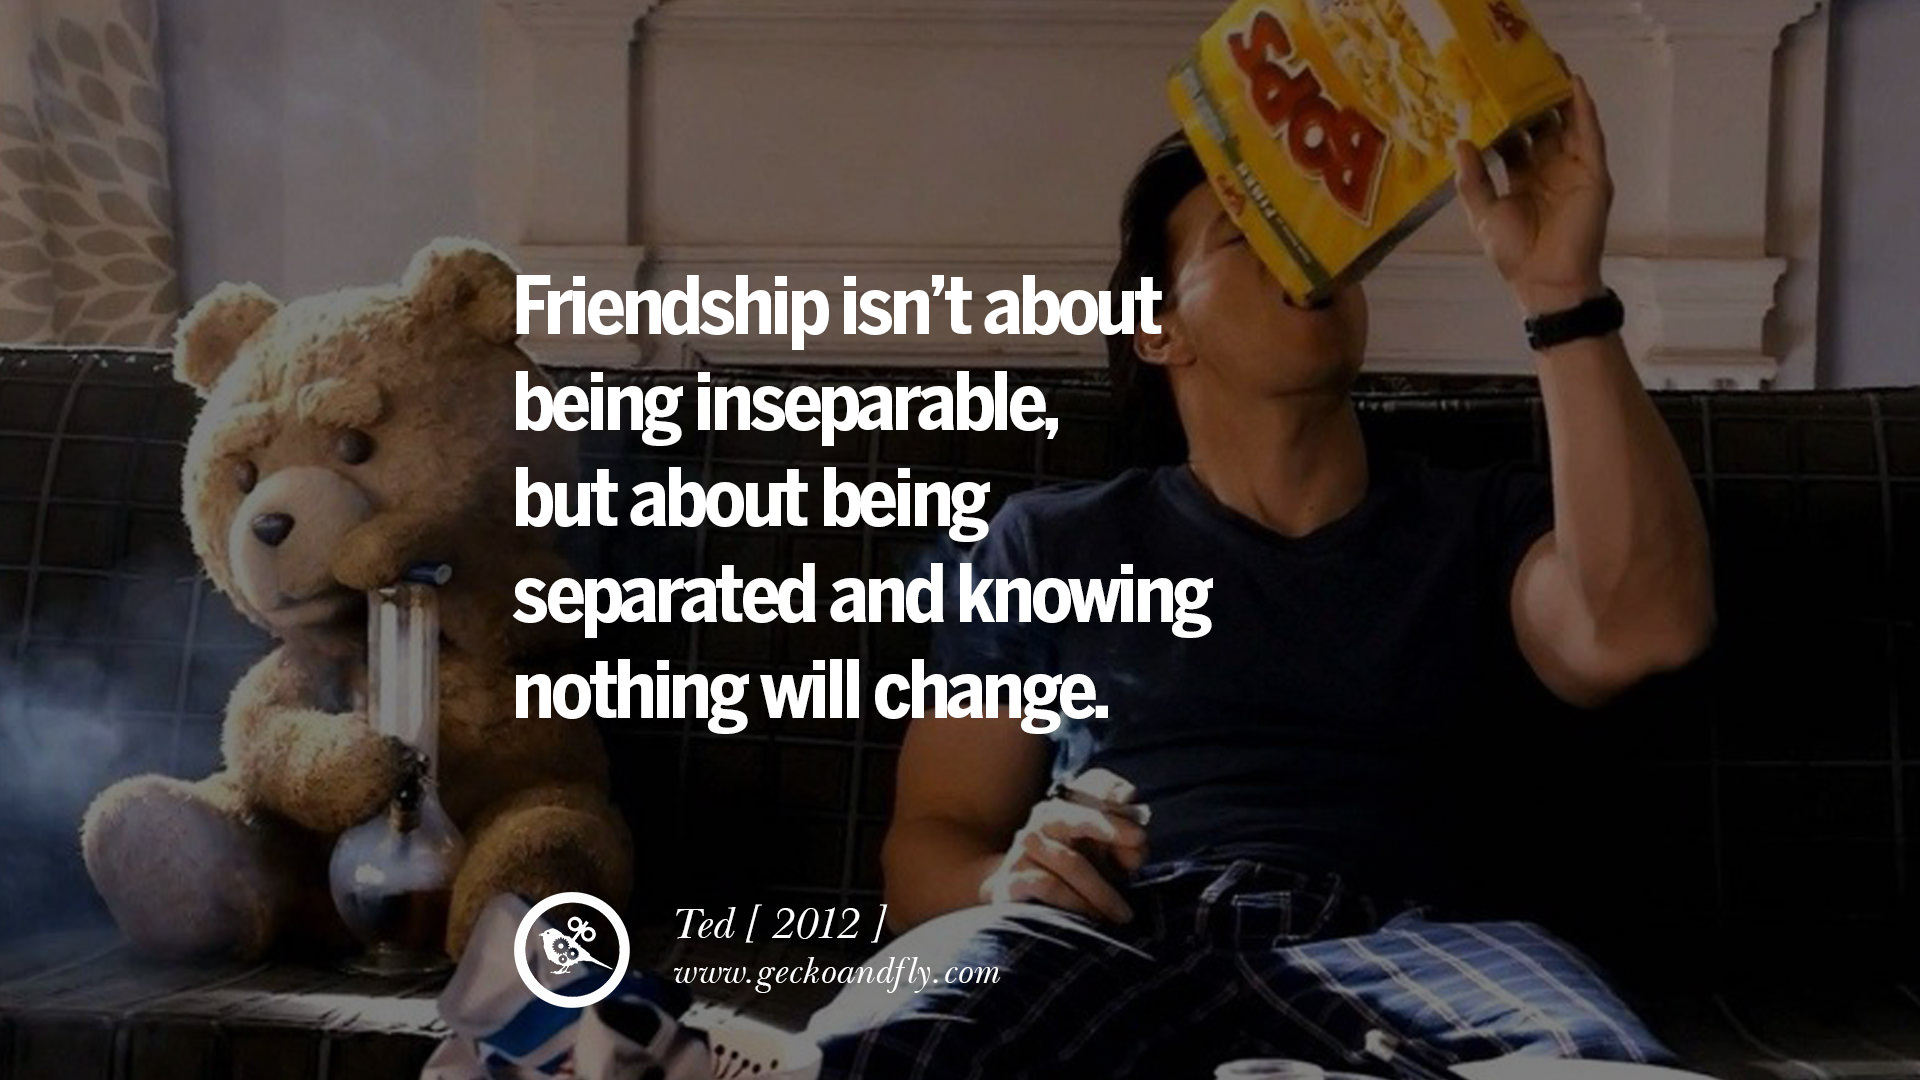 Friends Quotes: 20 Famous Movie Quotes On Love, Life, Relationship